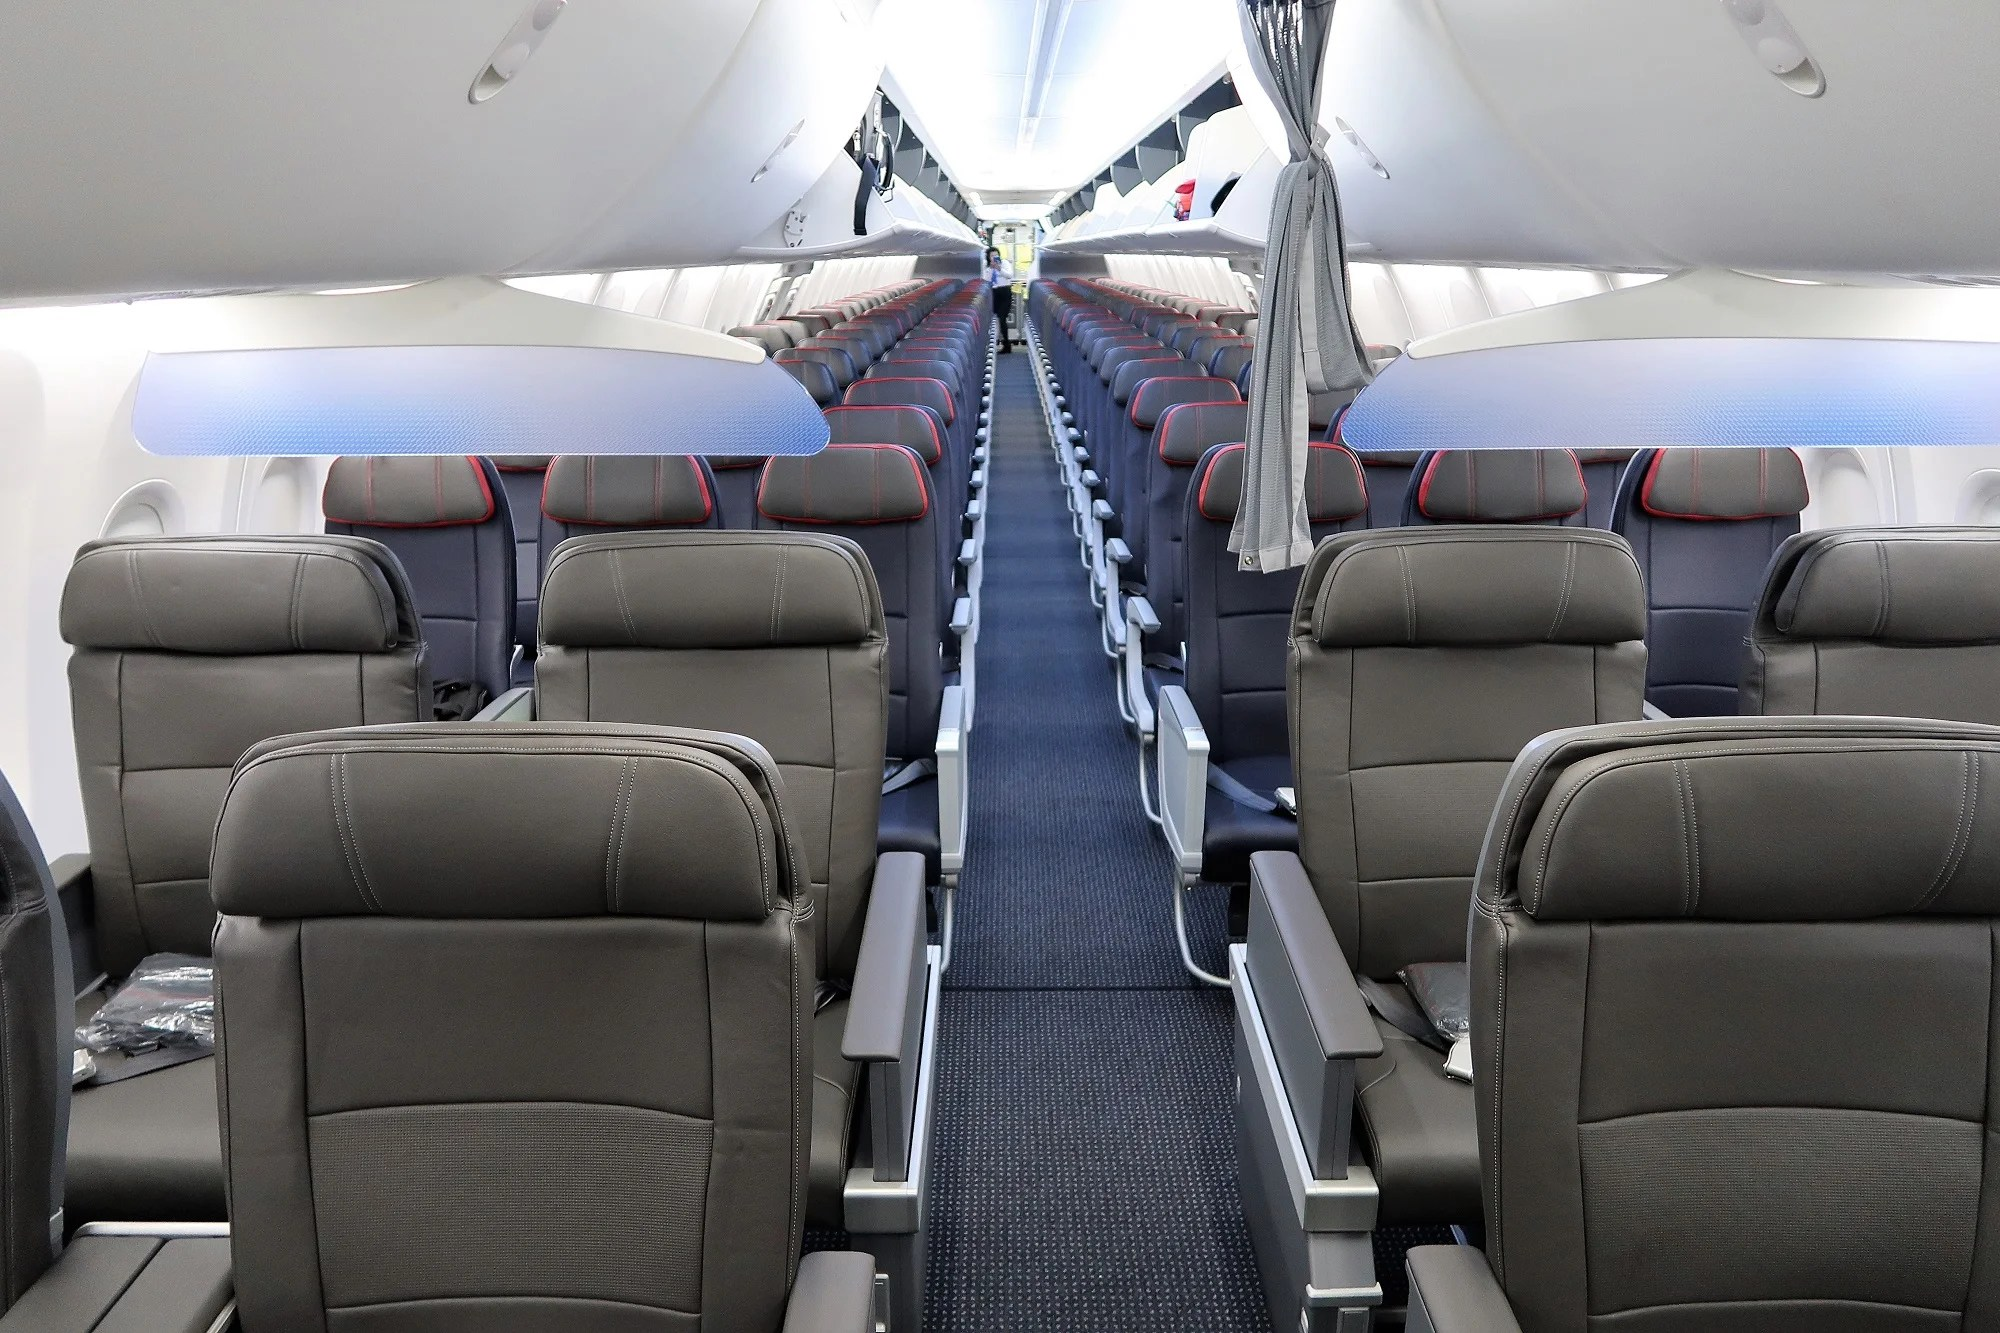 Aa Flight Attendants Agree 737 Max Bathrooms Are Too Small